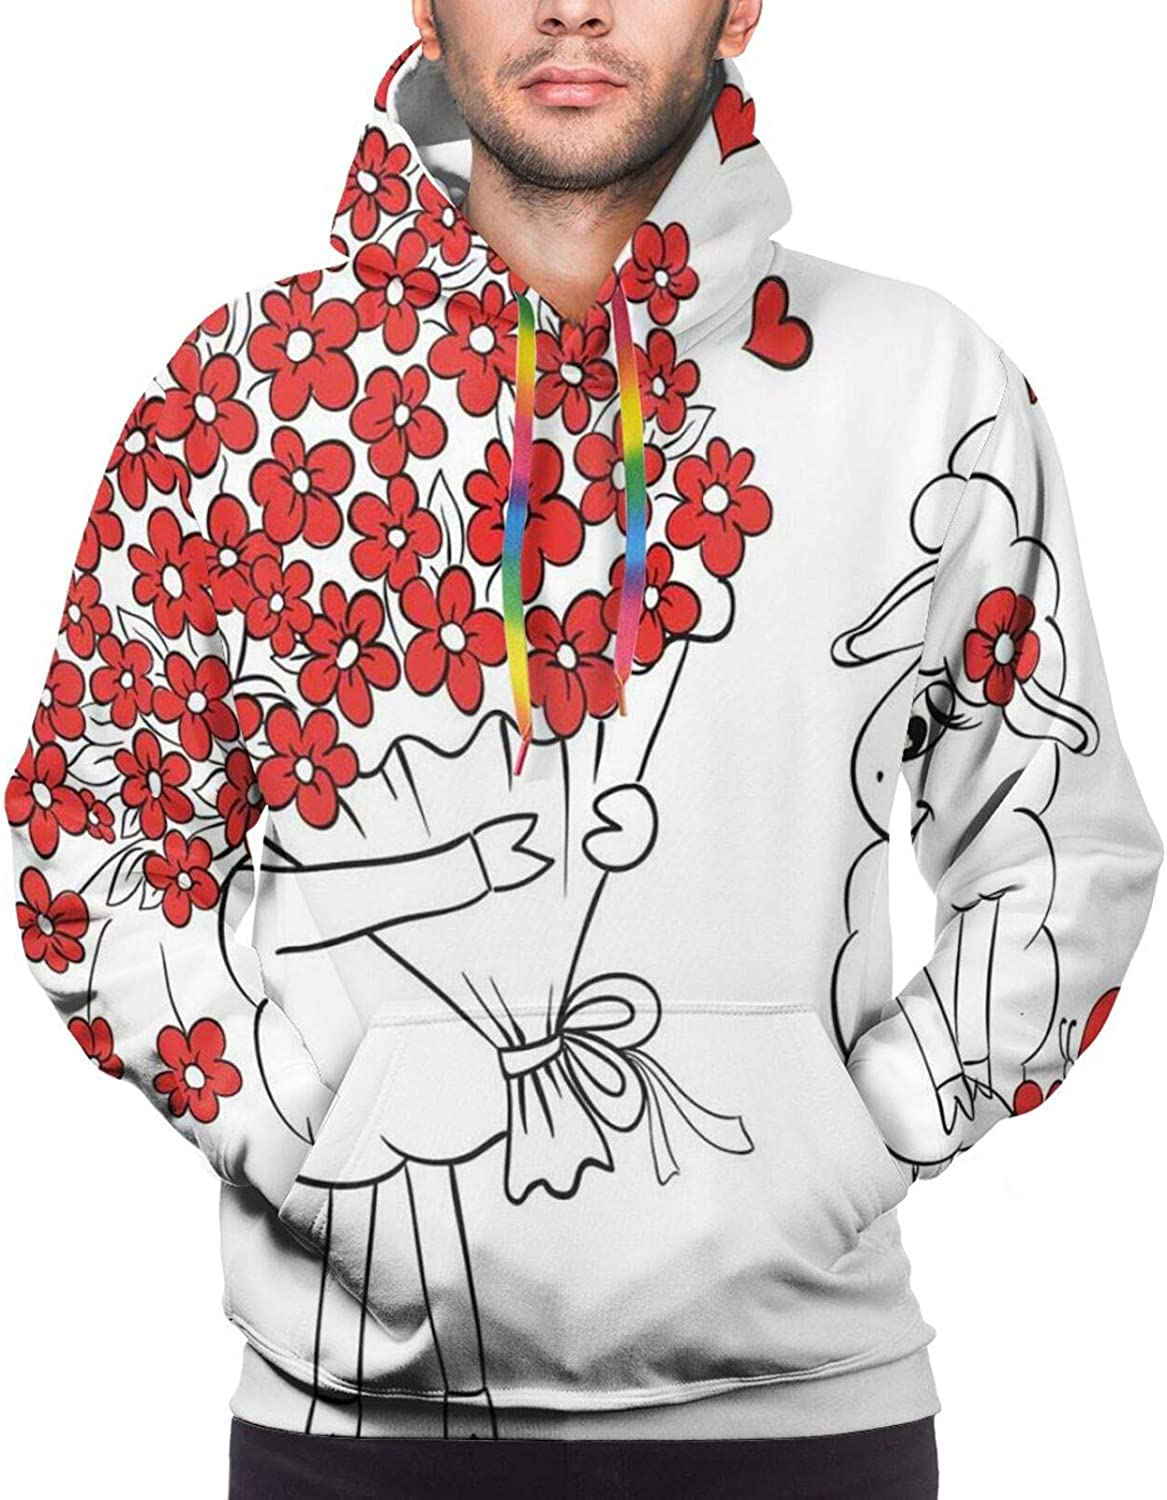 Men's Hoodies Sweatshirts,Lover Birds in The Rain On A Tree Branch Filled with Cherry Flowers Romantic Design